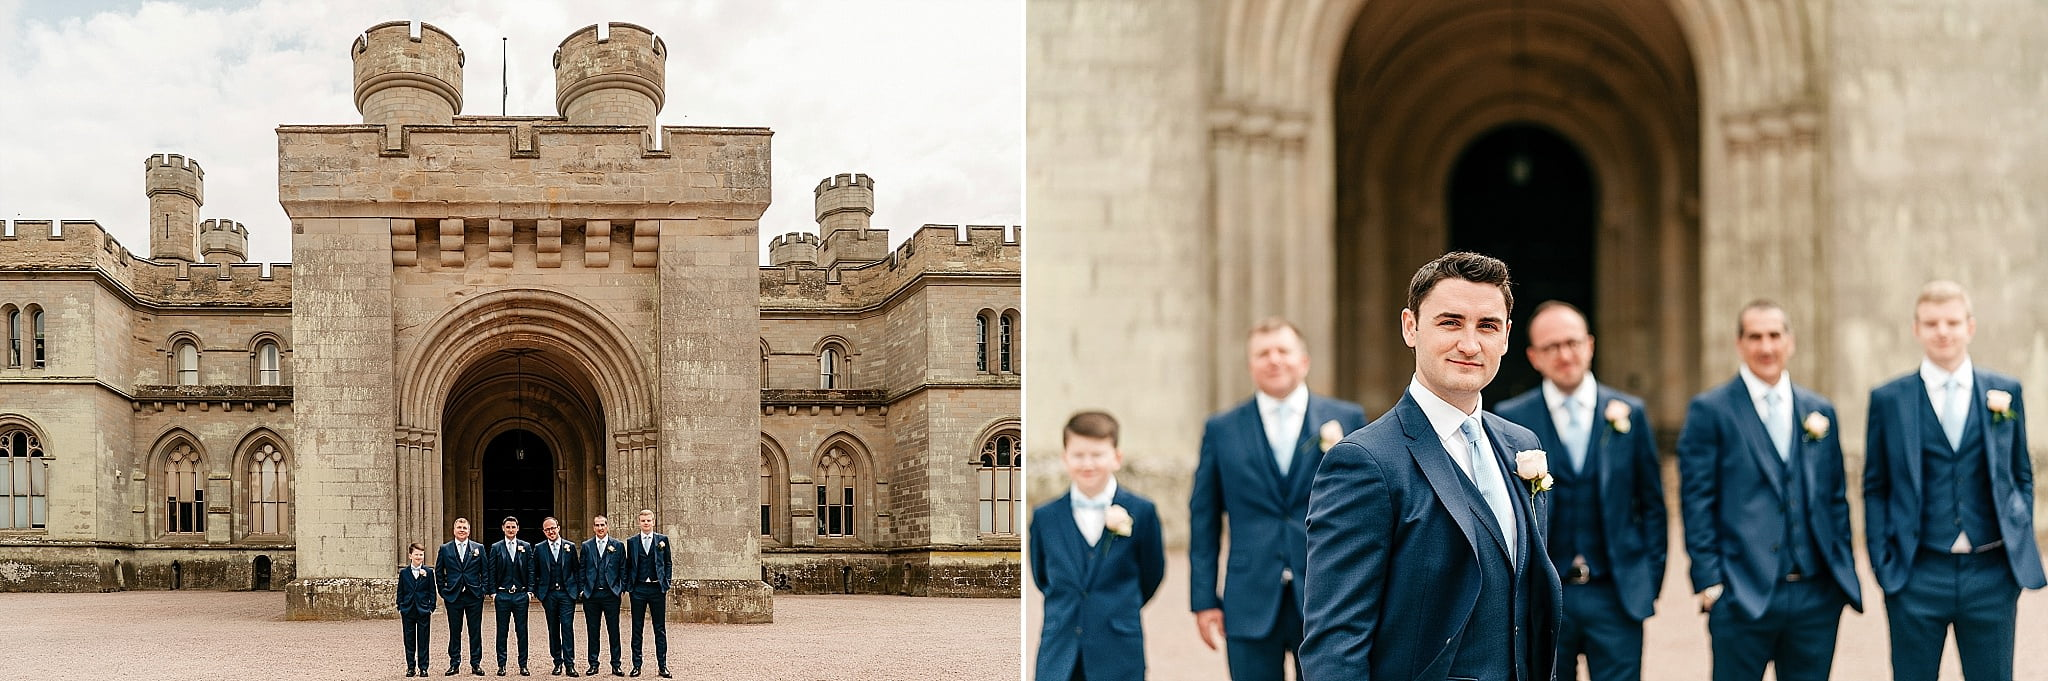 Eastnor Castle Wedding - Ilona + Shane 56